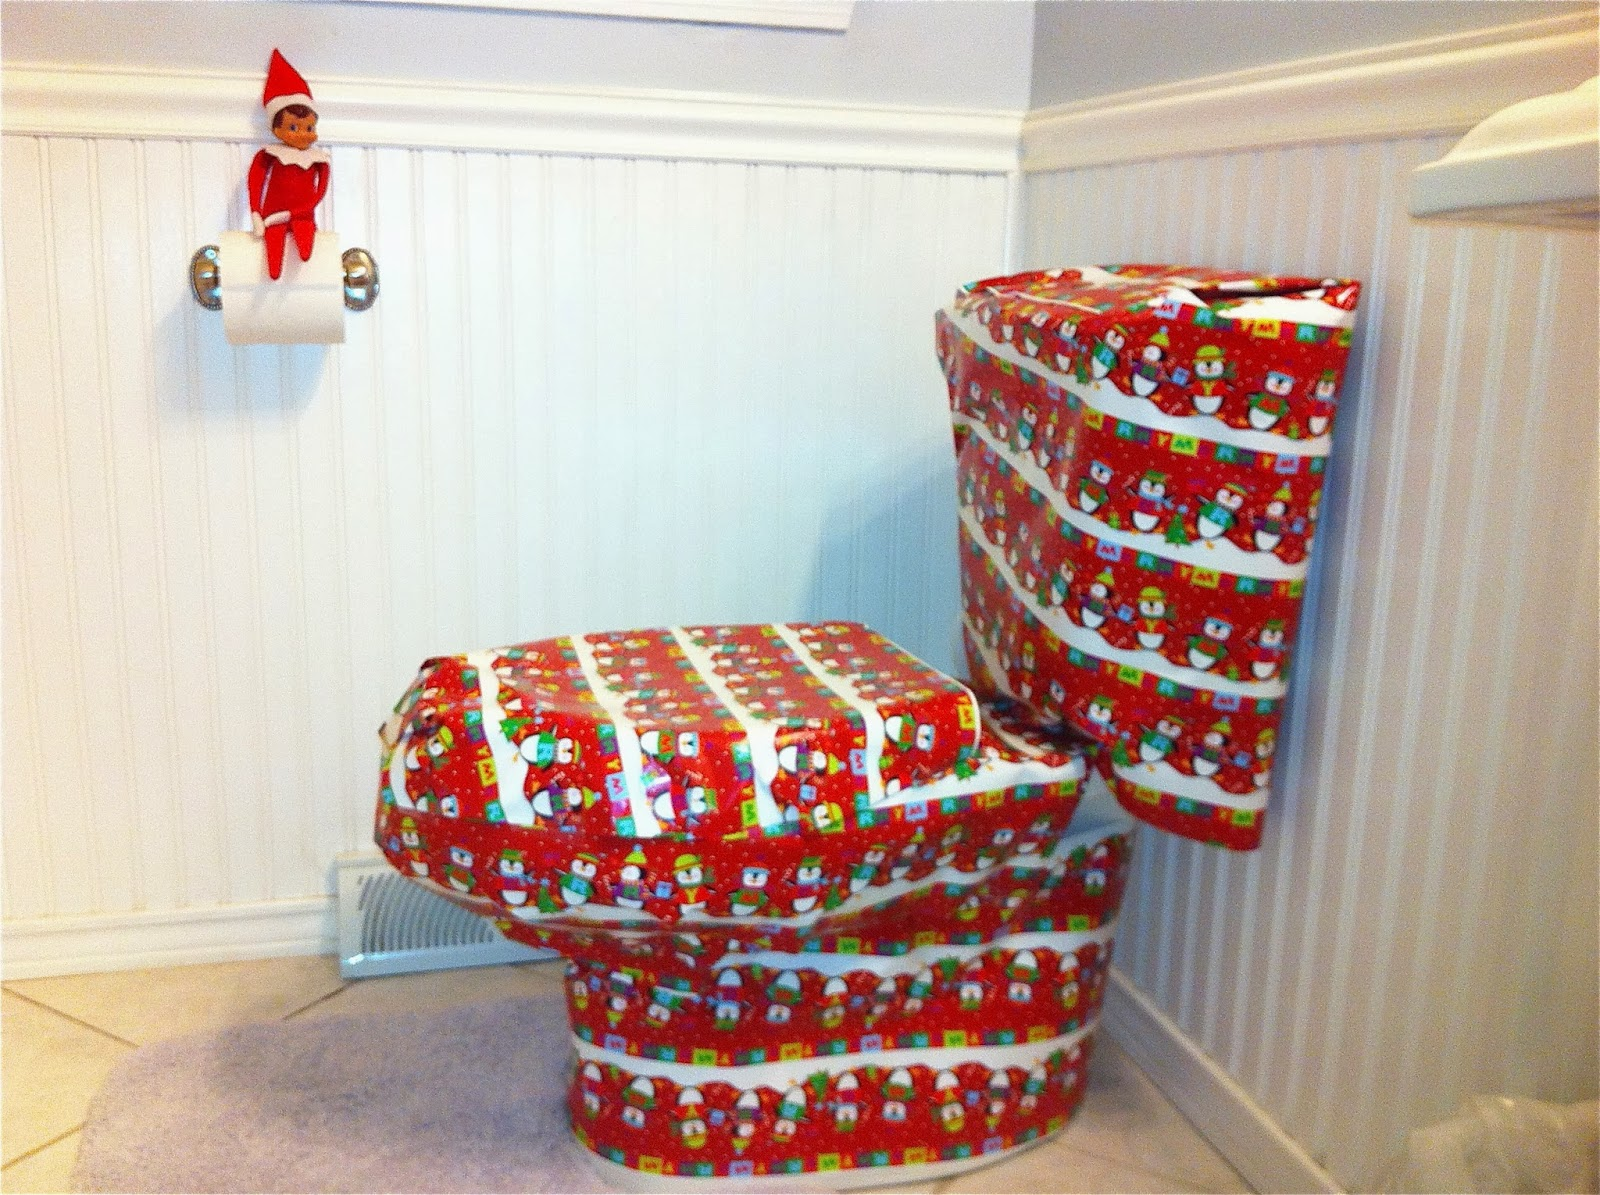 The christmas blog 2017 december 2013 for Elf on the shelf bathroom ideas